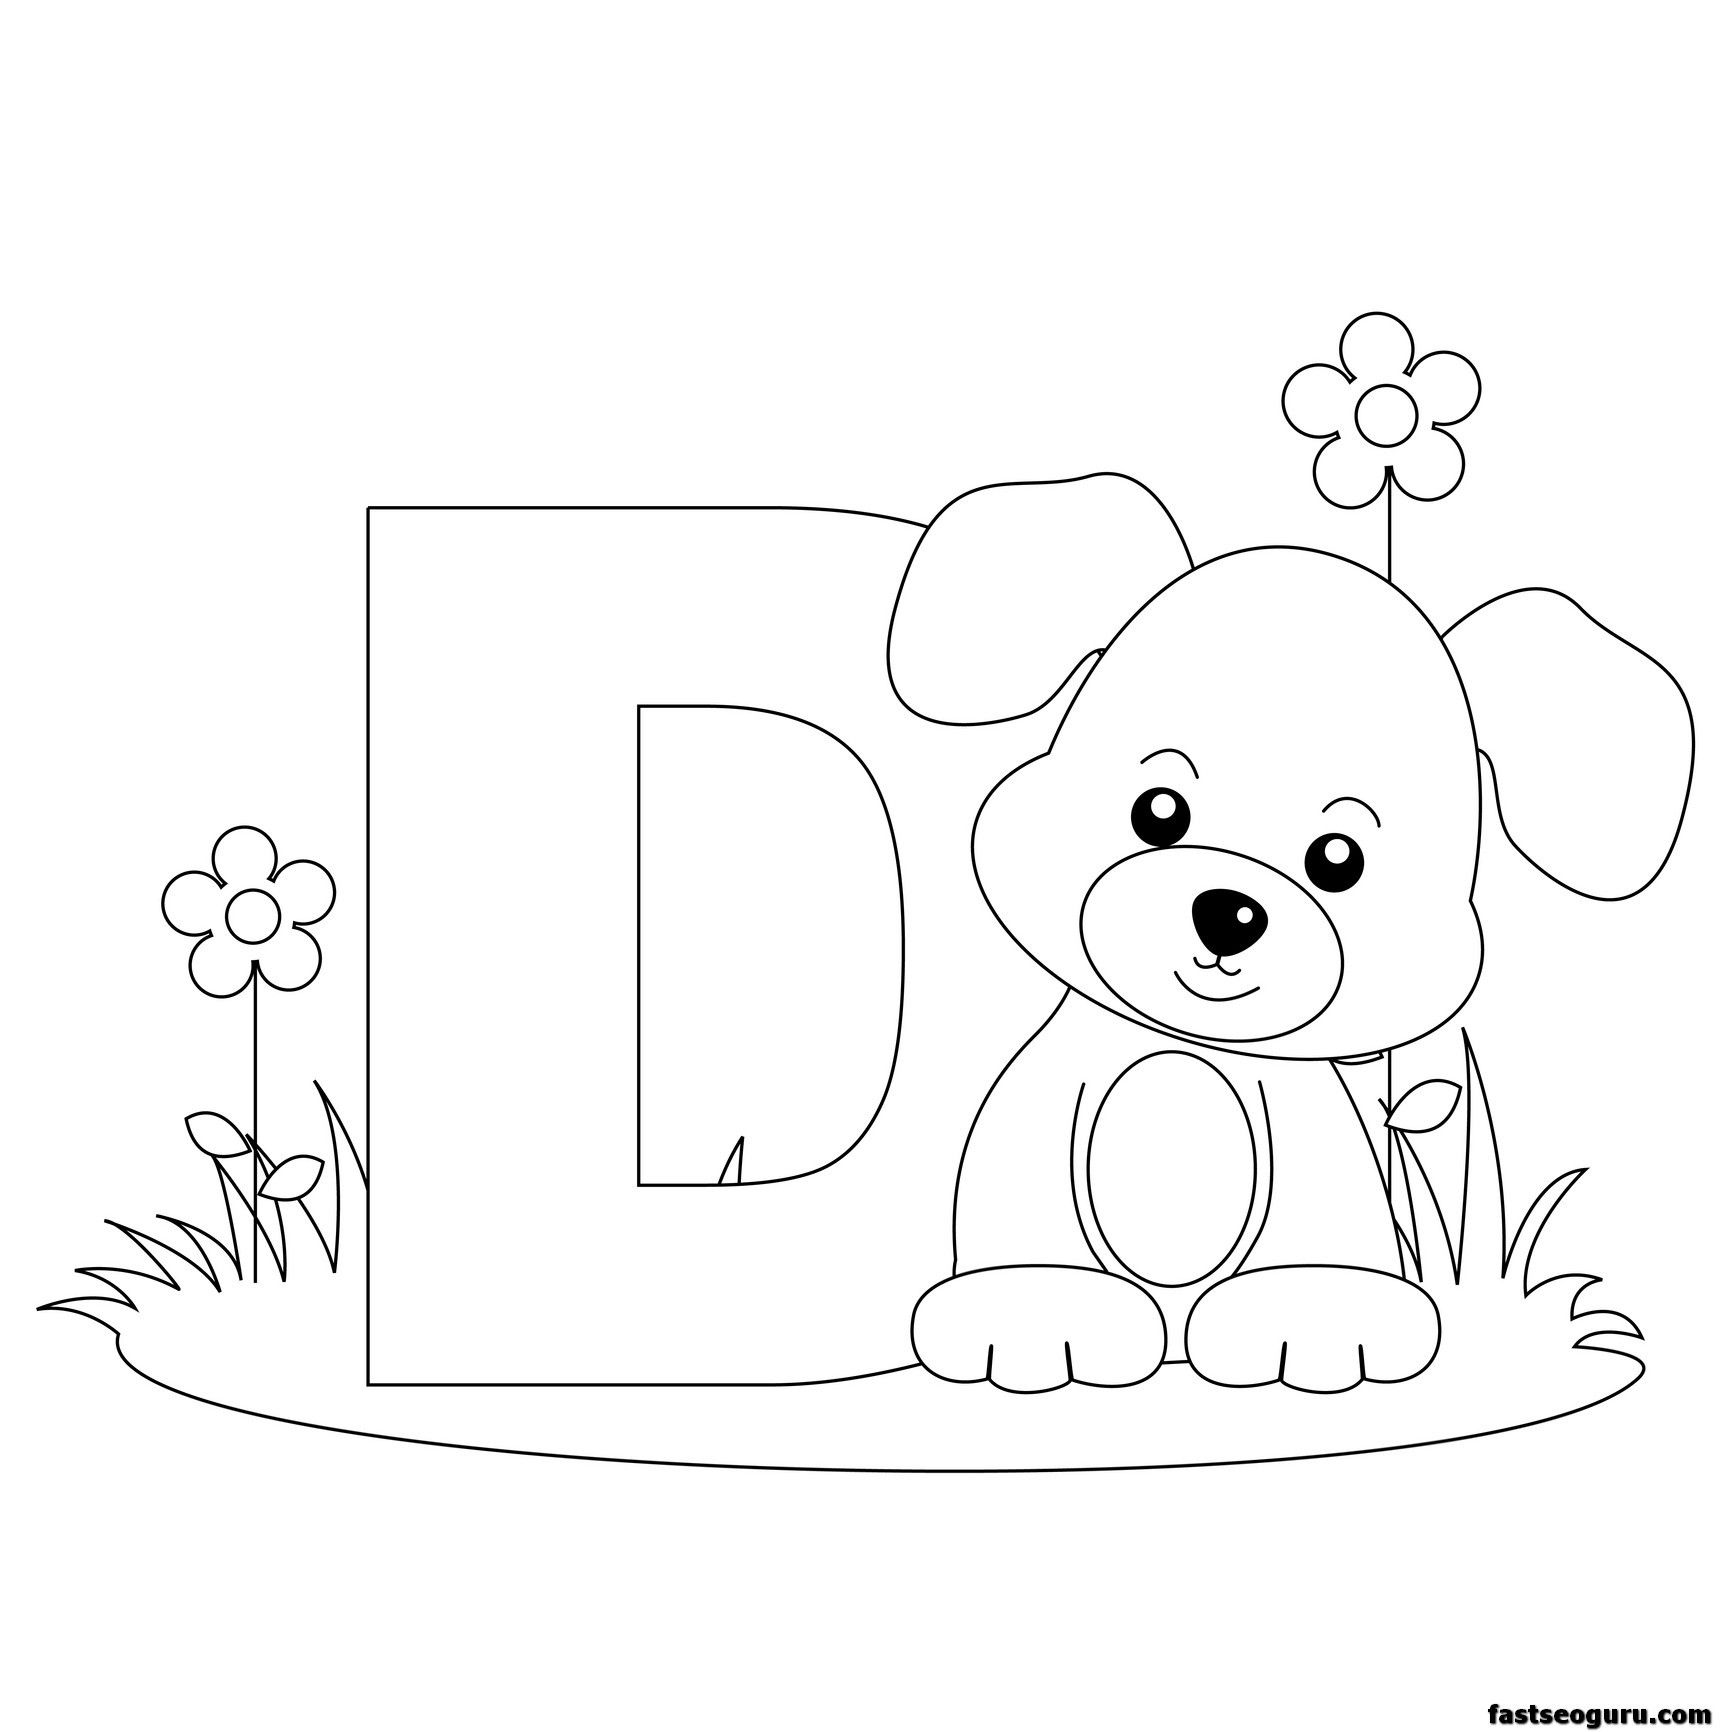 free printable alphabet coloring pages for kids best coloring pages for kids - Free Printable Alphabet Letters Coloring Pages